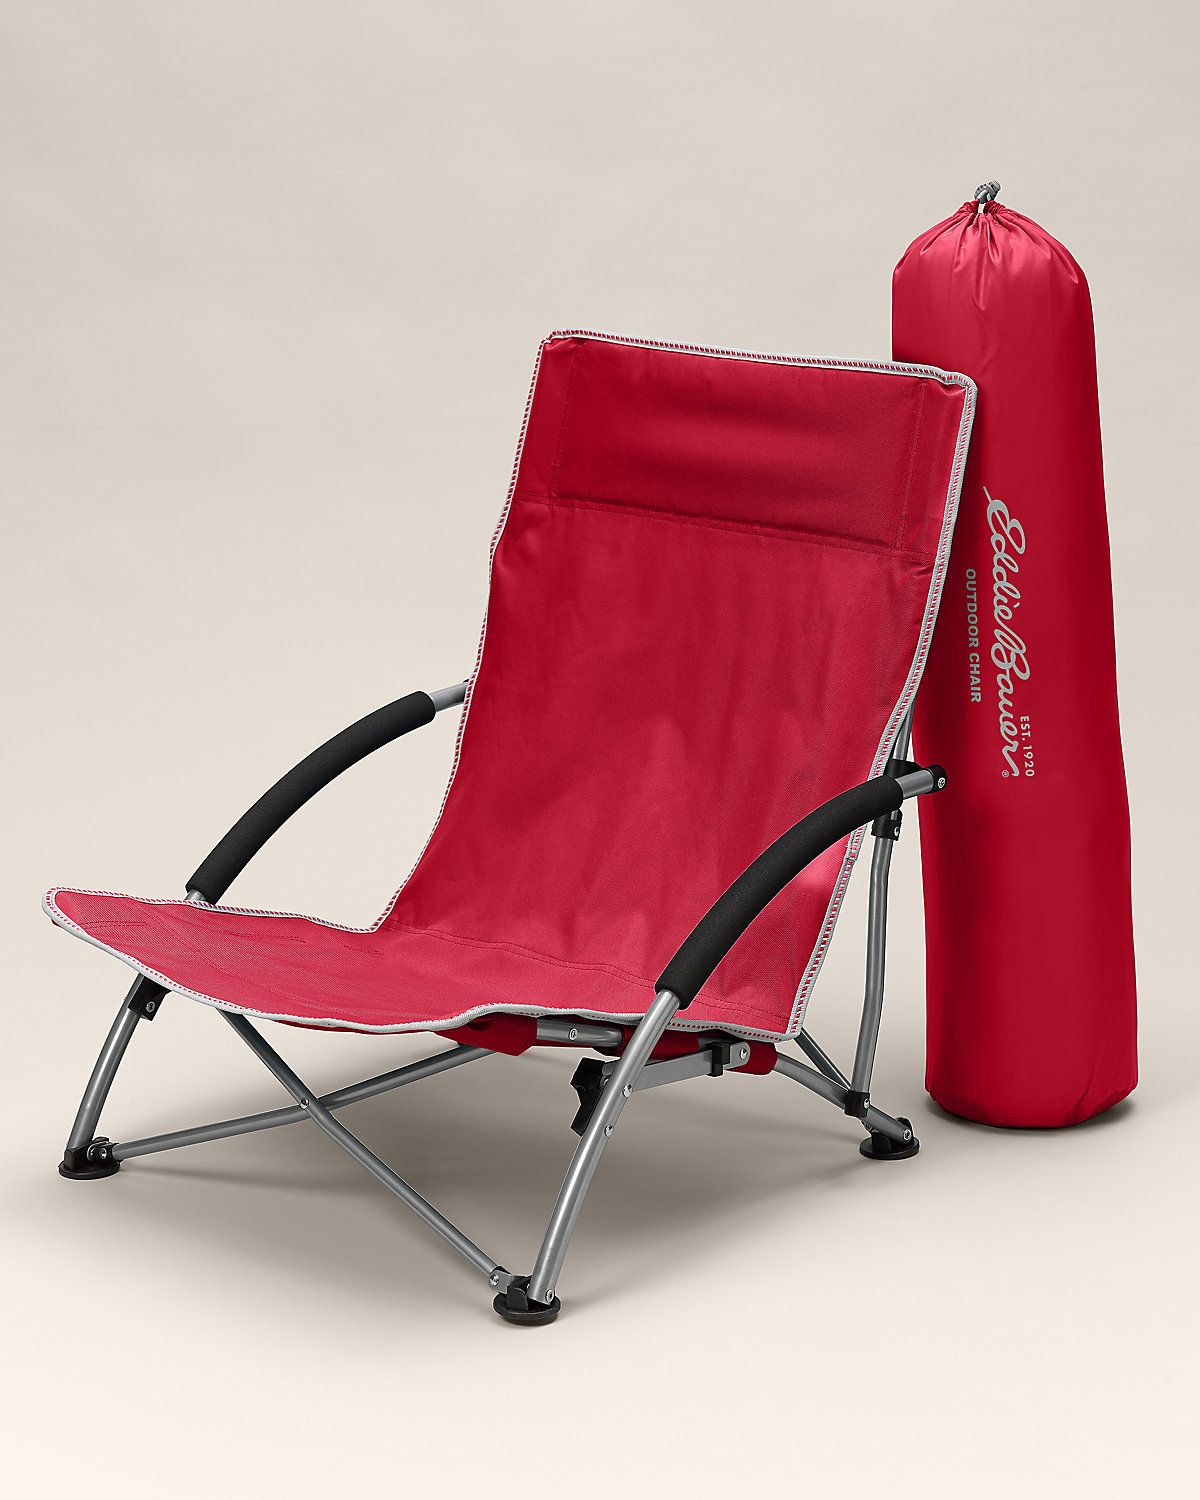 Outdoor Chair Eddie Bauer Outdoor Chairs Camping Chairs Chair